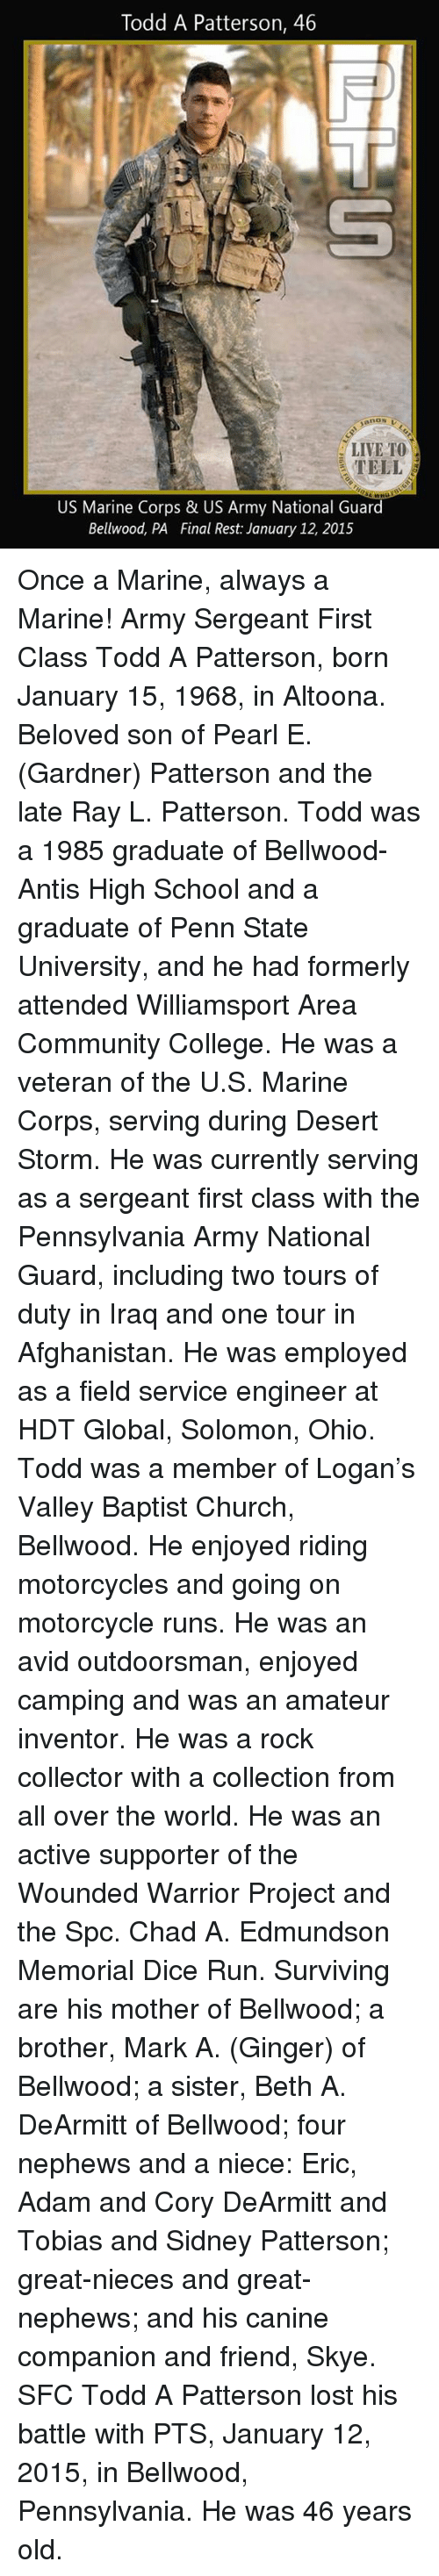 Church, College, and Community: Todd A Patterson, 46  anos v  LIVE TO  TELL  US Marine Corps & US Army National Guard  Beliwood, PA Final Rest: January 12, 2015 Once a Marine, always a Marine!  Army Sergeant First Class Todd A Patterson, born January 15, 1968, in Altoona. Beloved son of Pearl E. (Gardner) Patterson and the late Ray L. Patterson.  Todd was a 1985 graduate of Bellwood-Antis High School and a graduate of Penn State University, and he had formerly attended Williamsport Area Community College. He was a veteran of the U.S. Marine Corps, serving during Desert Storm. He was currently serving as a sergeant first class with the Pennsylvania Army National Guard, including two tours of duty in Iraq and one tour in Afghanistan. He was employed as a field service engineer at HDT Global, Solomon, Ohio.  Todd was a member of Logan's Valley Baptist Church, Bellwood. He enjoyed riding motorcycles and going on motorcycle runs. He was an avid outdoorsman, enjoyed camping and was an amateur inventor. He was a rock collector with a collection from all over the world. He was an active supporter of the Wounded Warrior Project and the Spc. Chad A. Edmundson Memorial Dice Run.  Surviving are his mother of Bellwood; a brother, Mark A. (Ginger) of Bellwood; a sister, Beth A. DeArmitt of Bellwood; four nephews and a niece: Eric, Adam and Cory DeArmitt and Tobias and Sidney Patterson; great-nieces and great-nephews; and his canine companion and friend, Skye.  SFC Todd A Patterson lost his battle with PTS, January 12, 2015, in Bellwood, Pennsylvania. He was 46 years old.